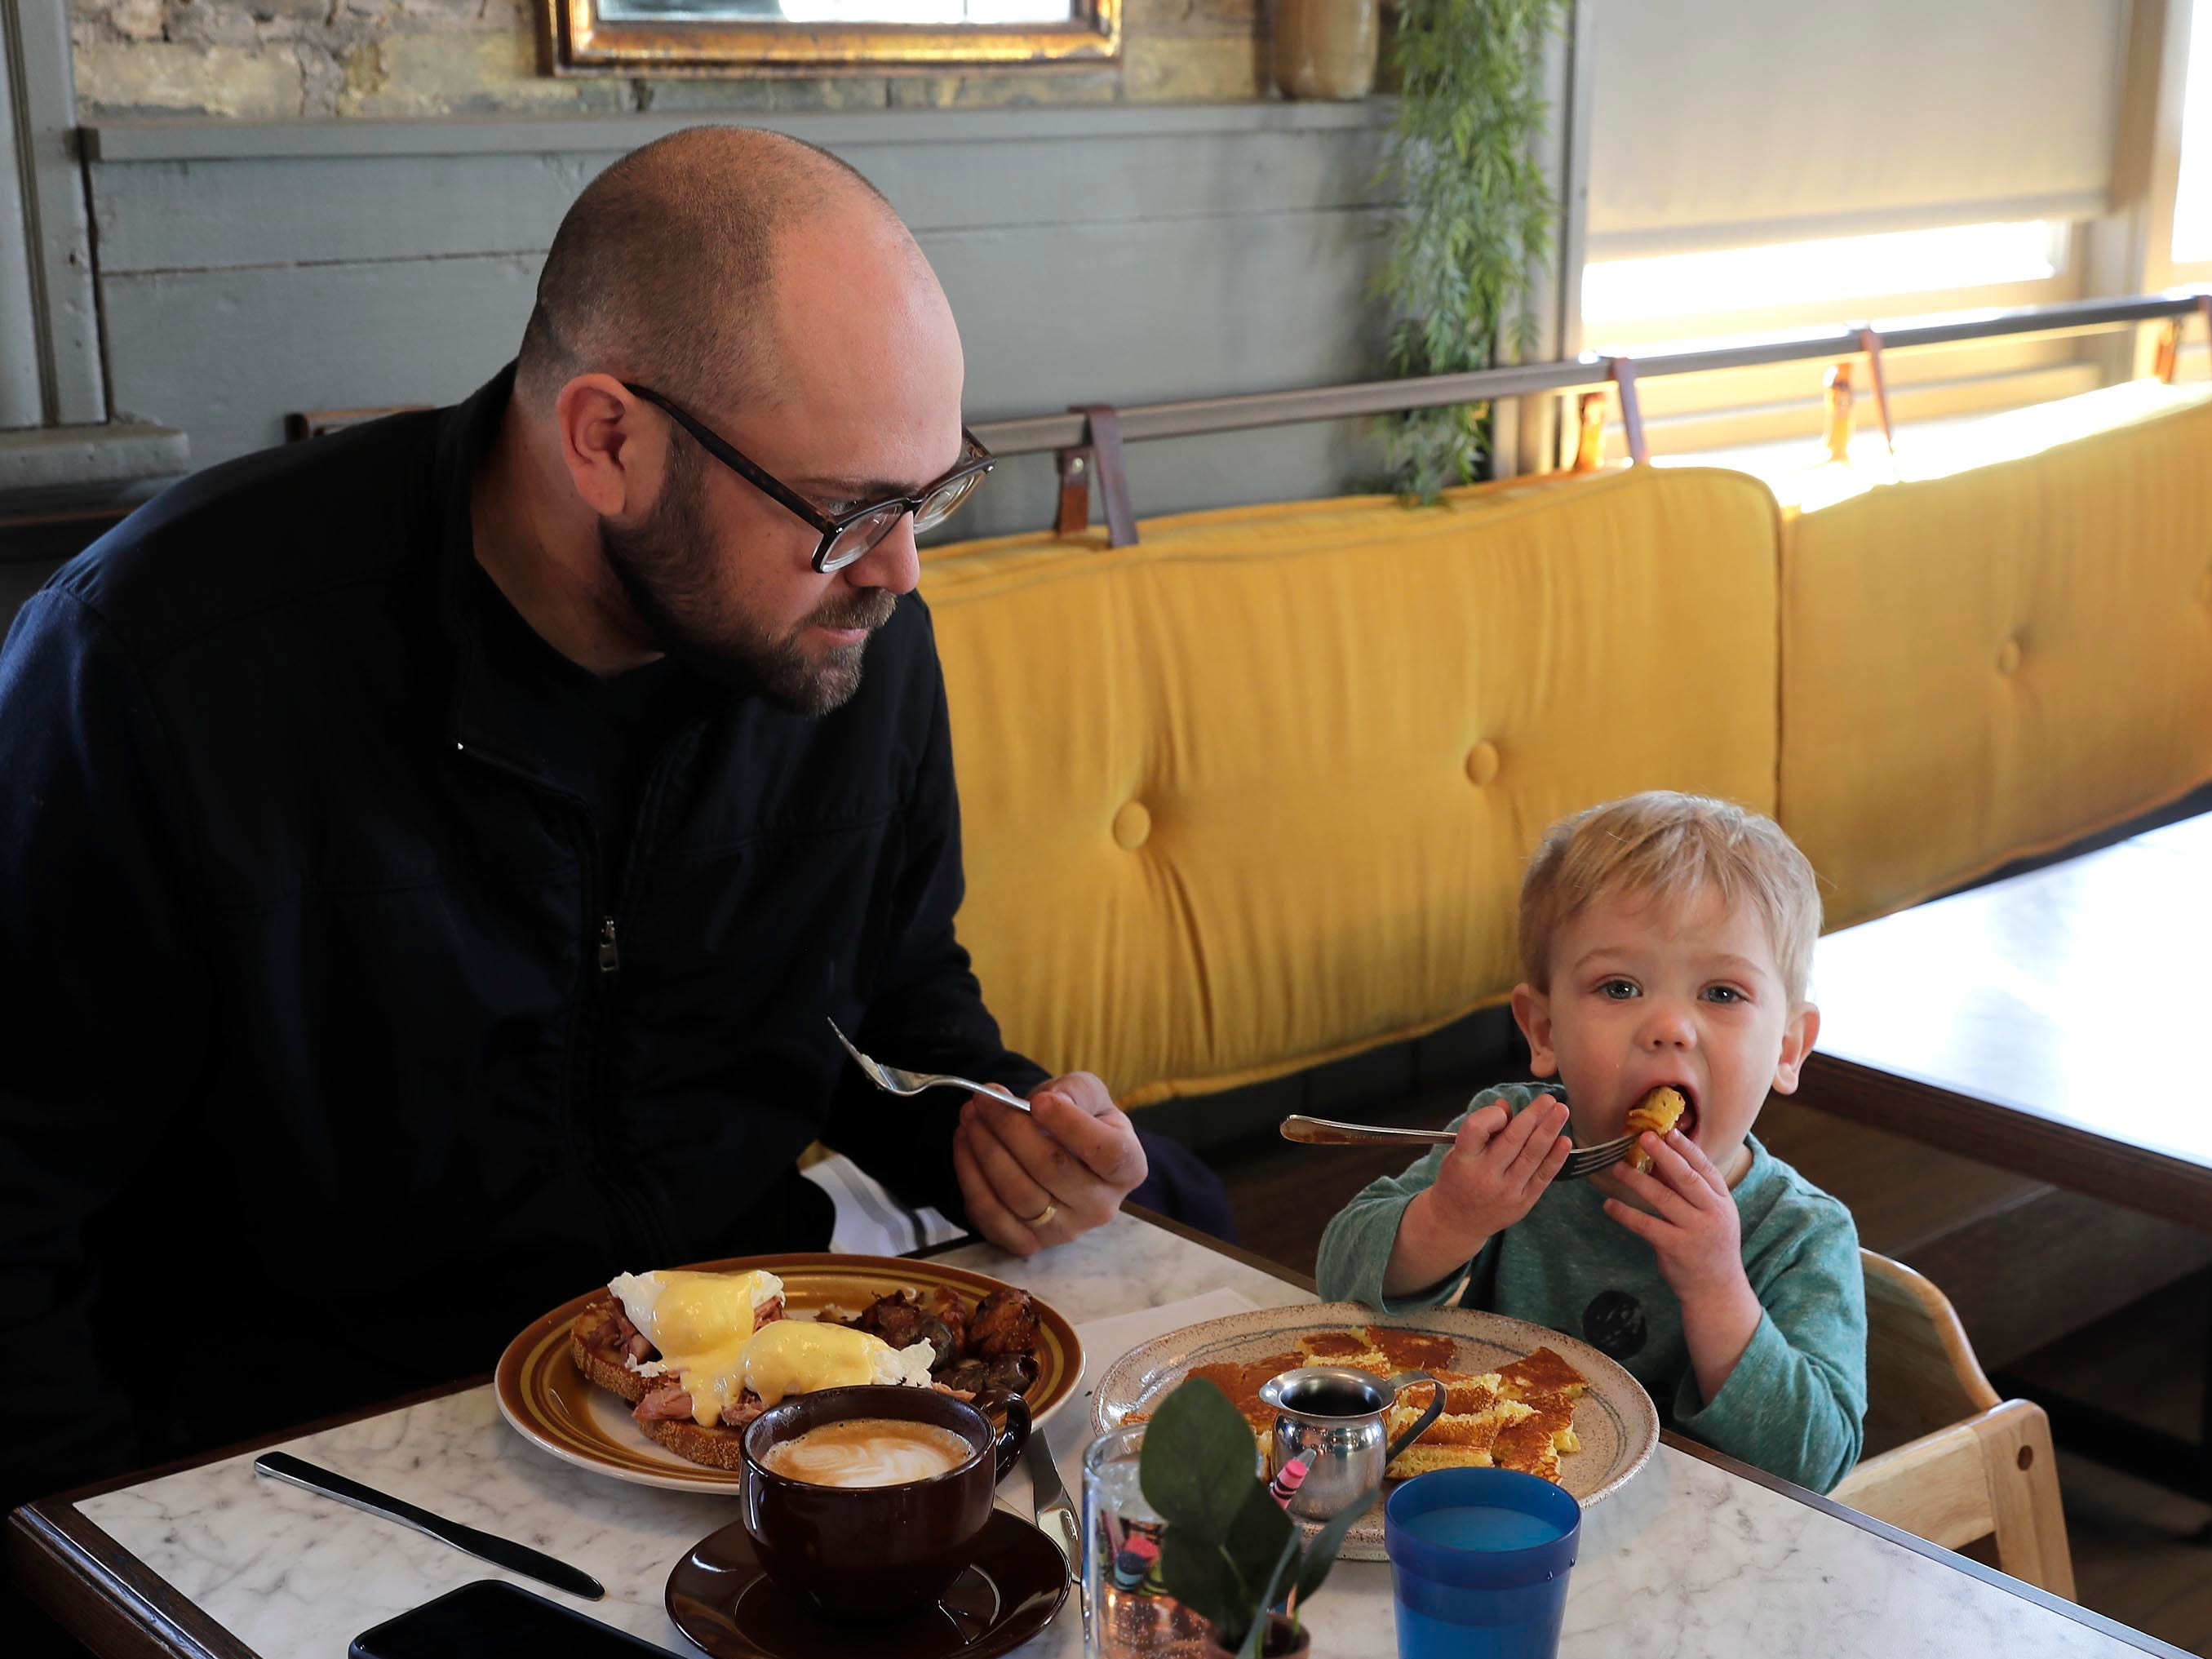 Nick Hubacher and his 18-month-old son, Wody, both from  Menomonee Falls, enjoy breakfast at  Uncle Wolfie's Breakfast Tavern.